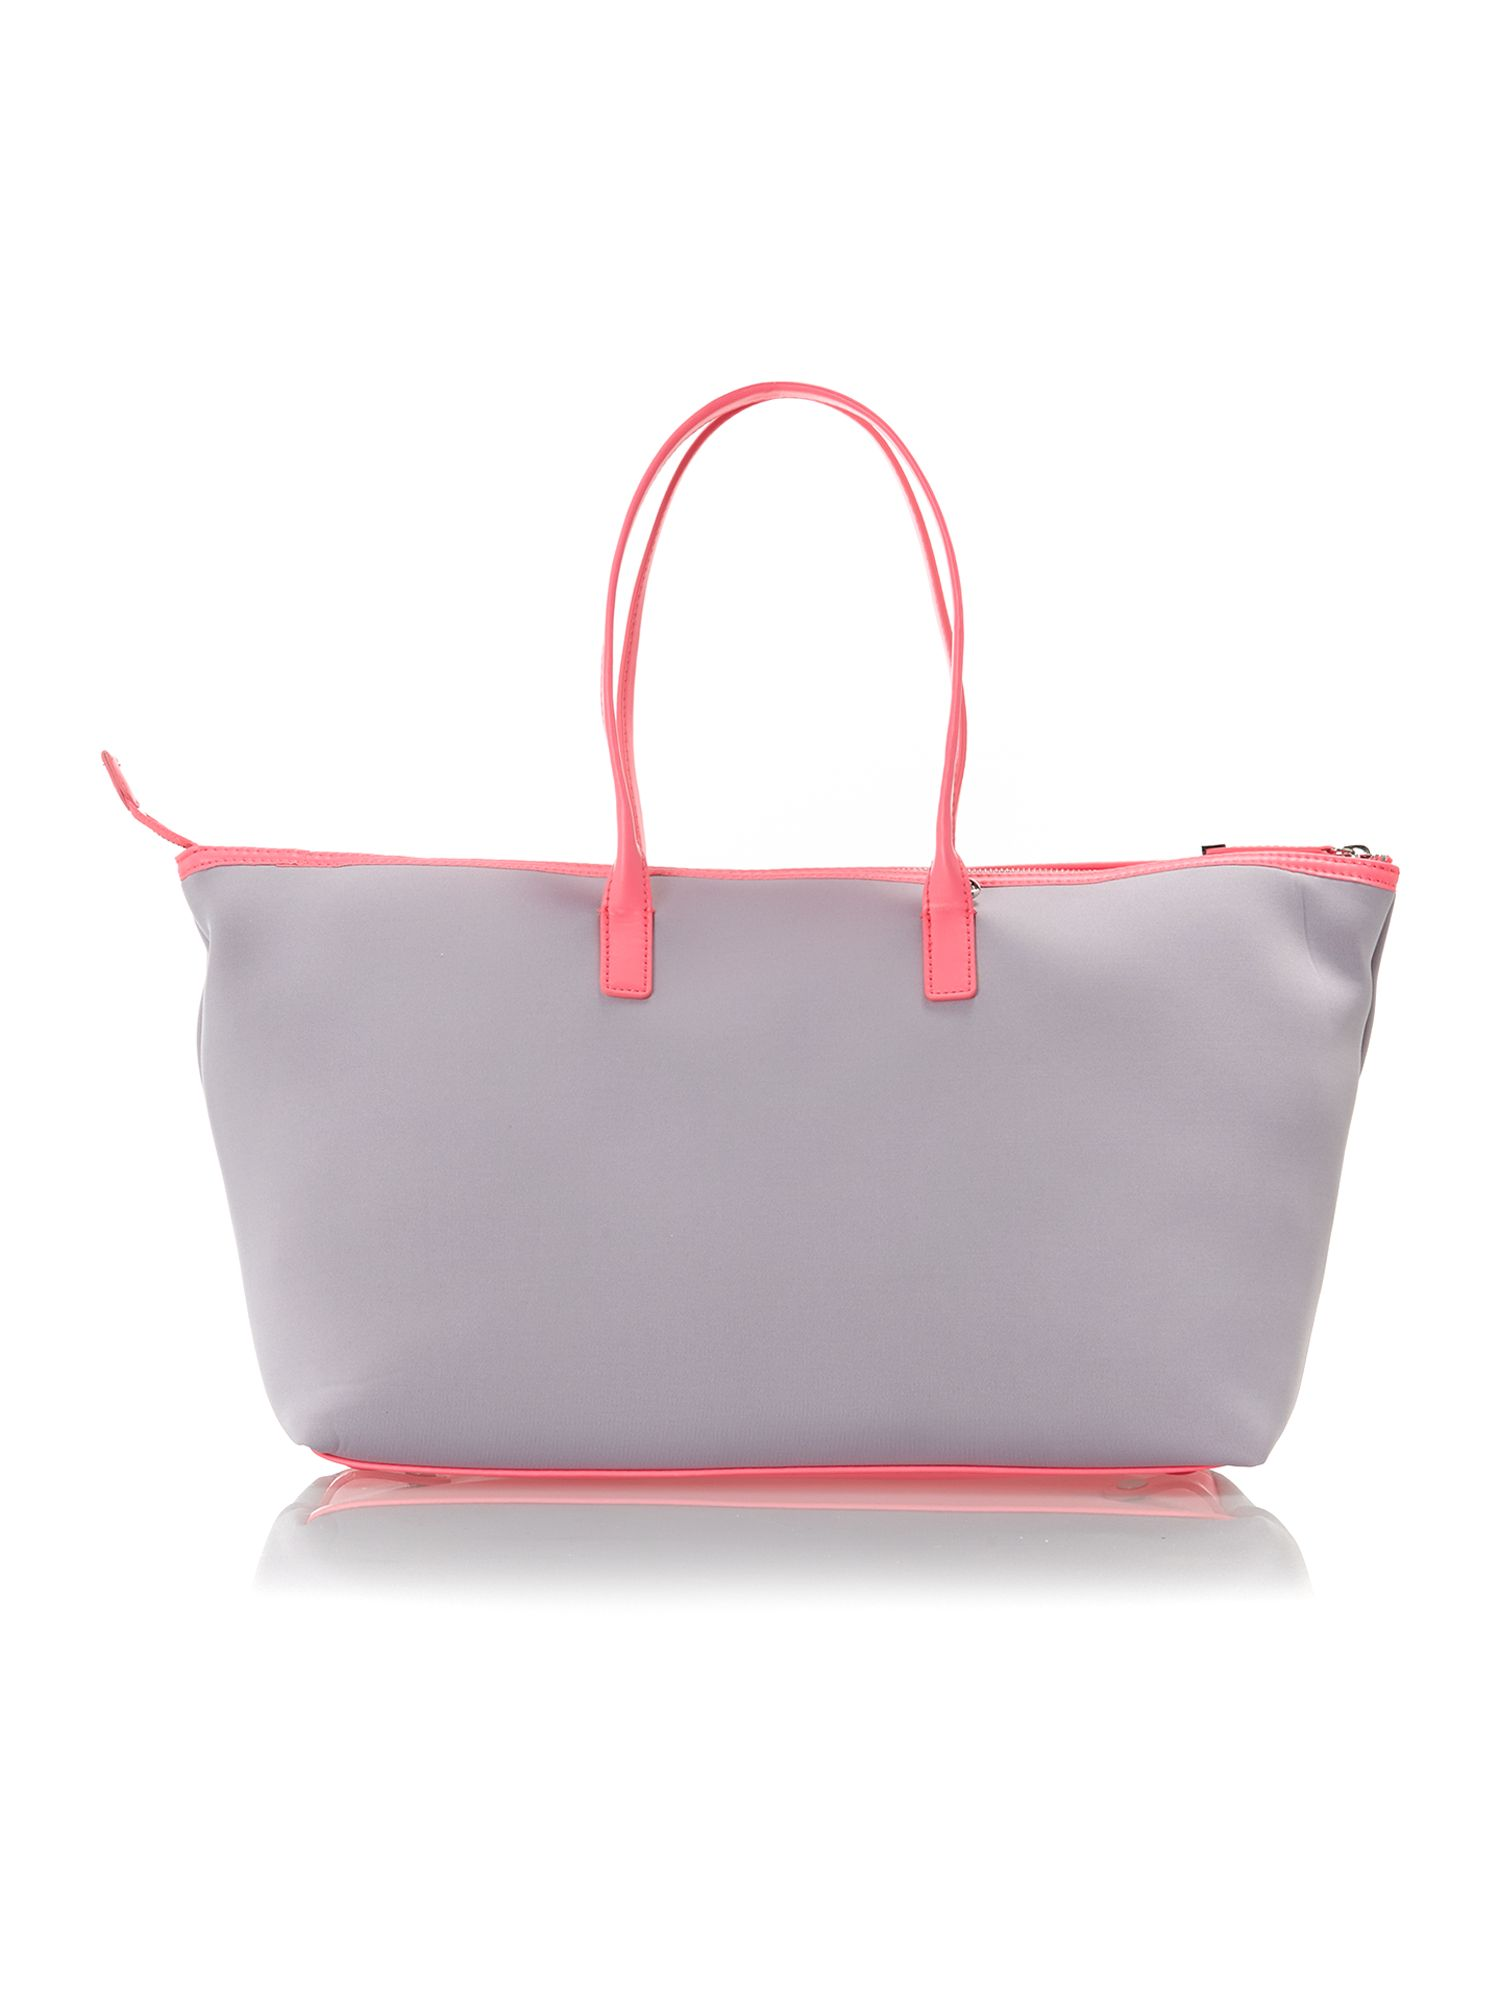 Neoprene multi-coloured tote bag